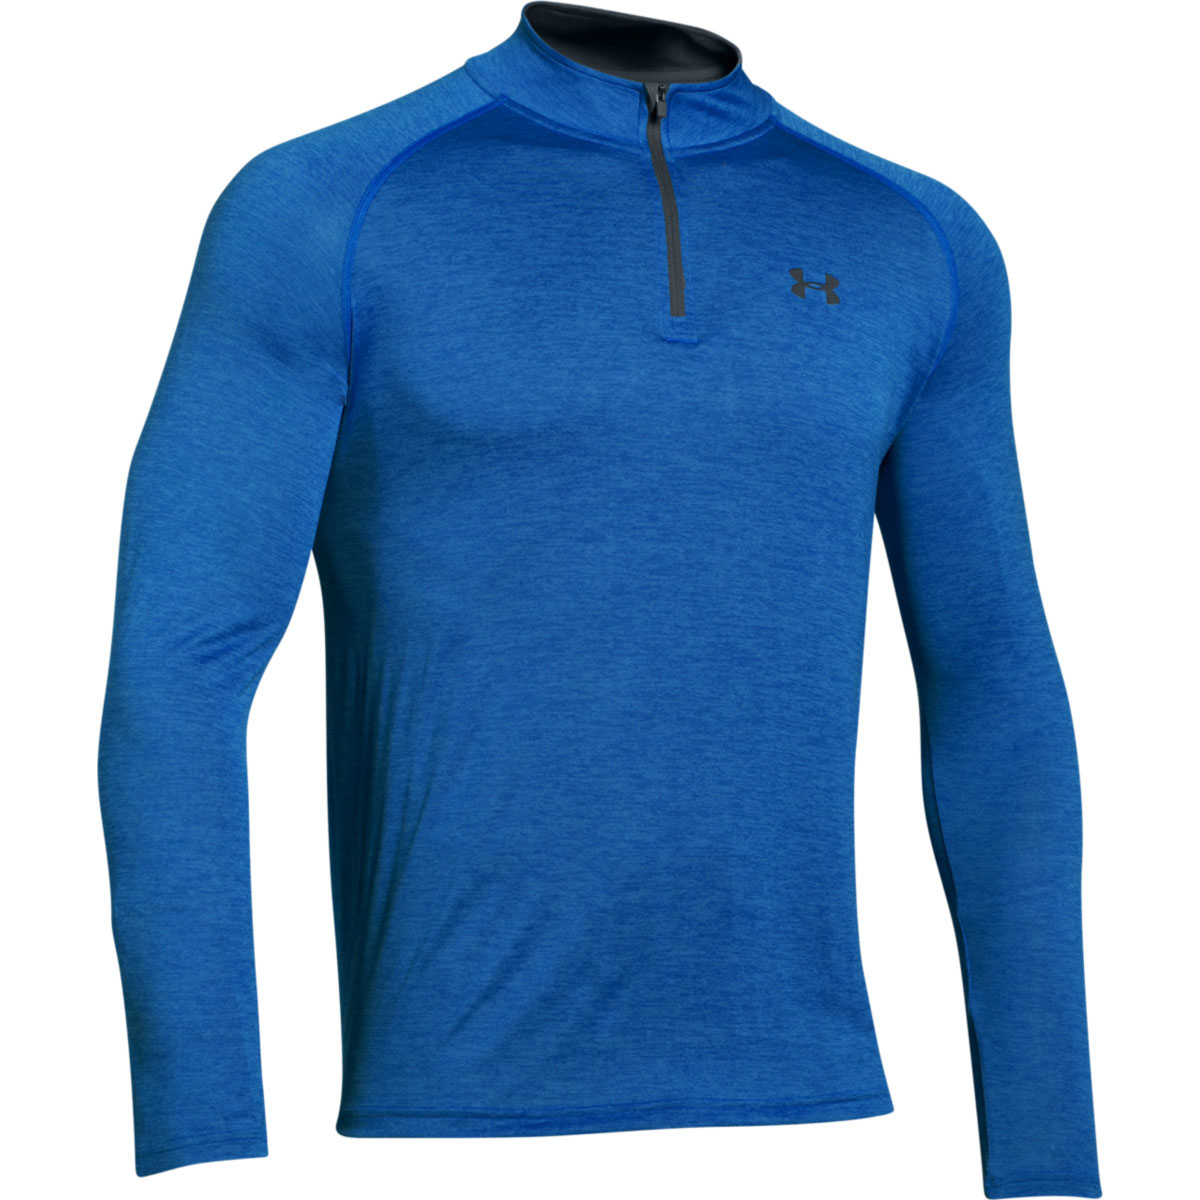 Under-Armour-Mens-UA-Tech-1-4-Zip-Long-Sleeve-Top-Workout-Layer-27-OFF-RRP thumbnail 94